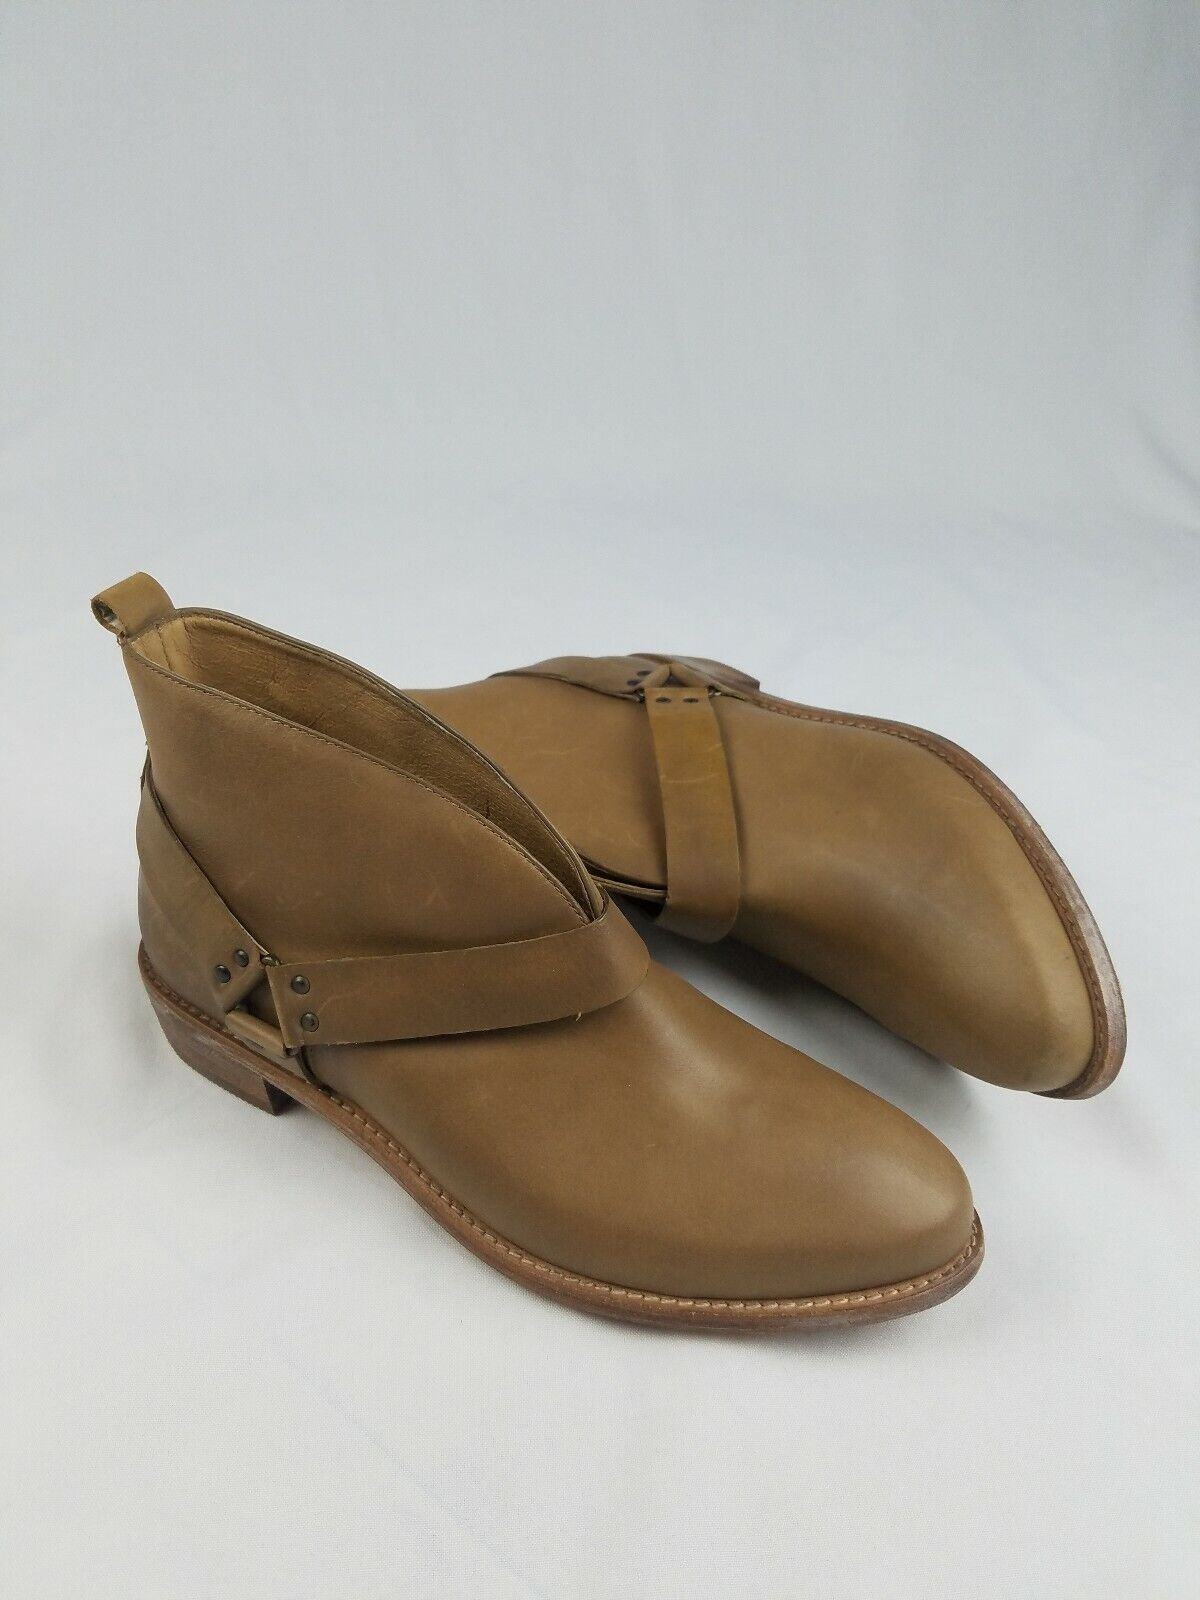 Koolaburra Santa Barbara women 10 tan harness buckle Dame booties